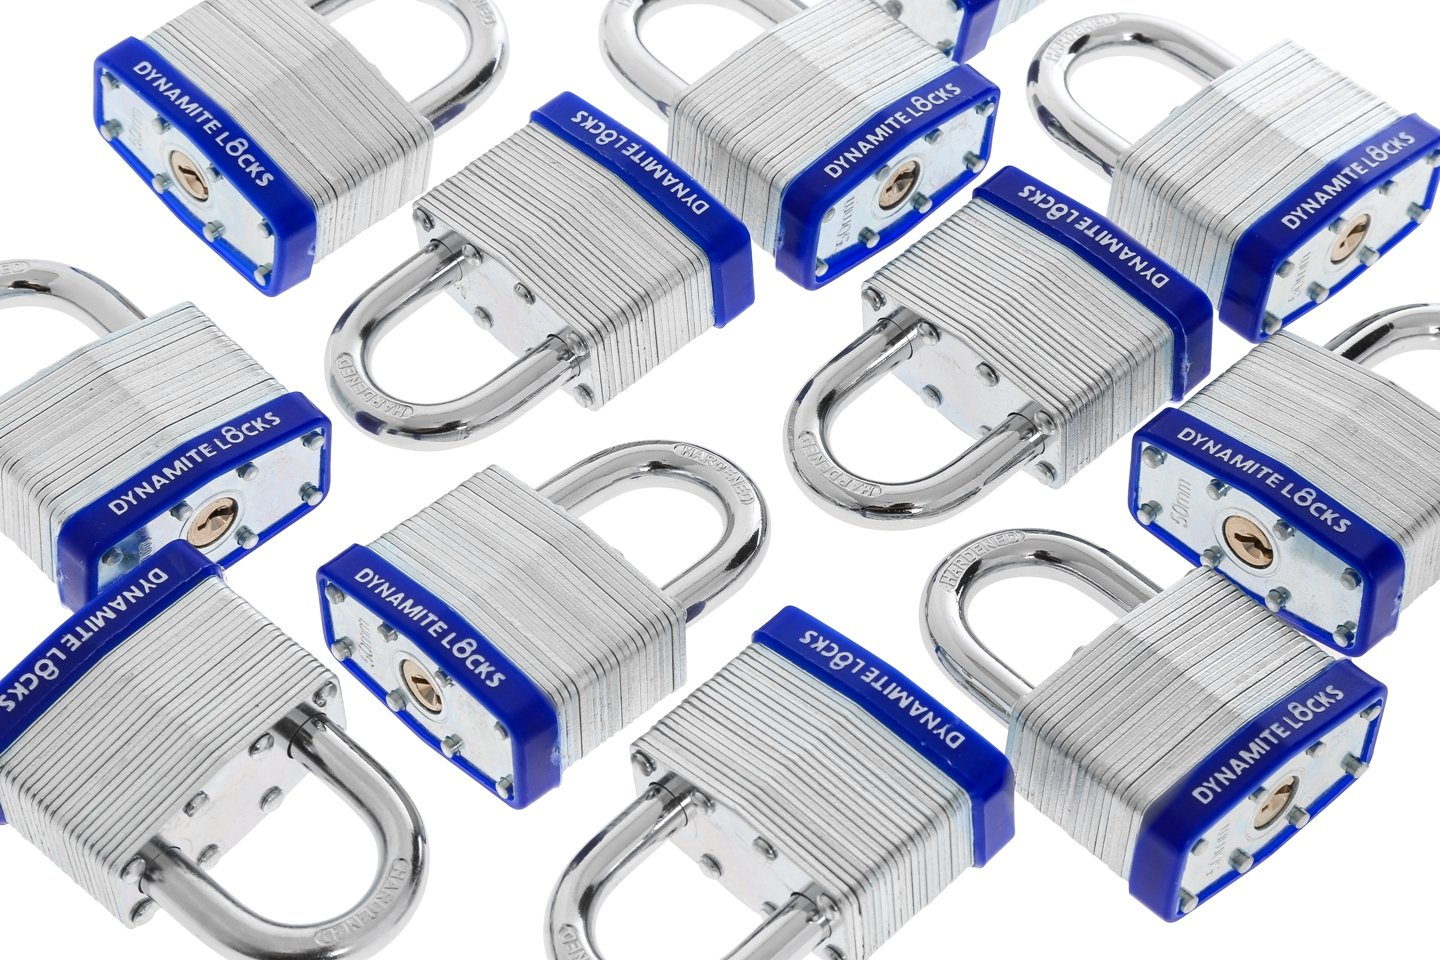 48 PC PIECE SET 50MM HEAVY DUTY DYNAMITE LOCKS KEYED ALIKE PAD LOCKS SHORT SHACKLE LAMINATED PADLOCK KEY ALIKE COMMERCIAL GRADE MULTIPLE PAD LOCKS KEYEDALIKE ALL THE SAME PADLOCKS ... by Dynamite Locks